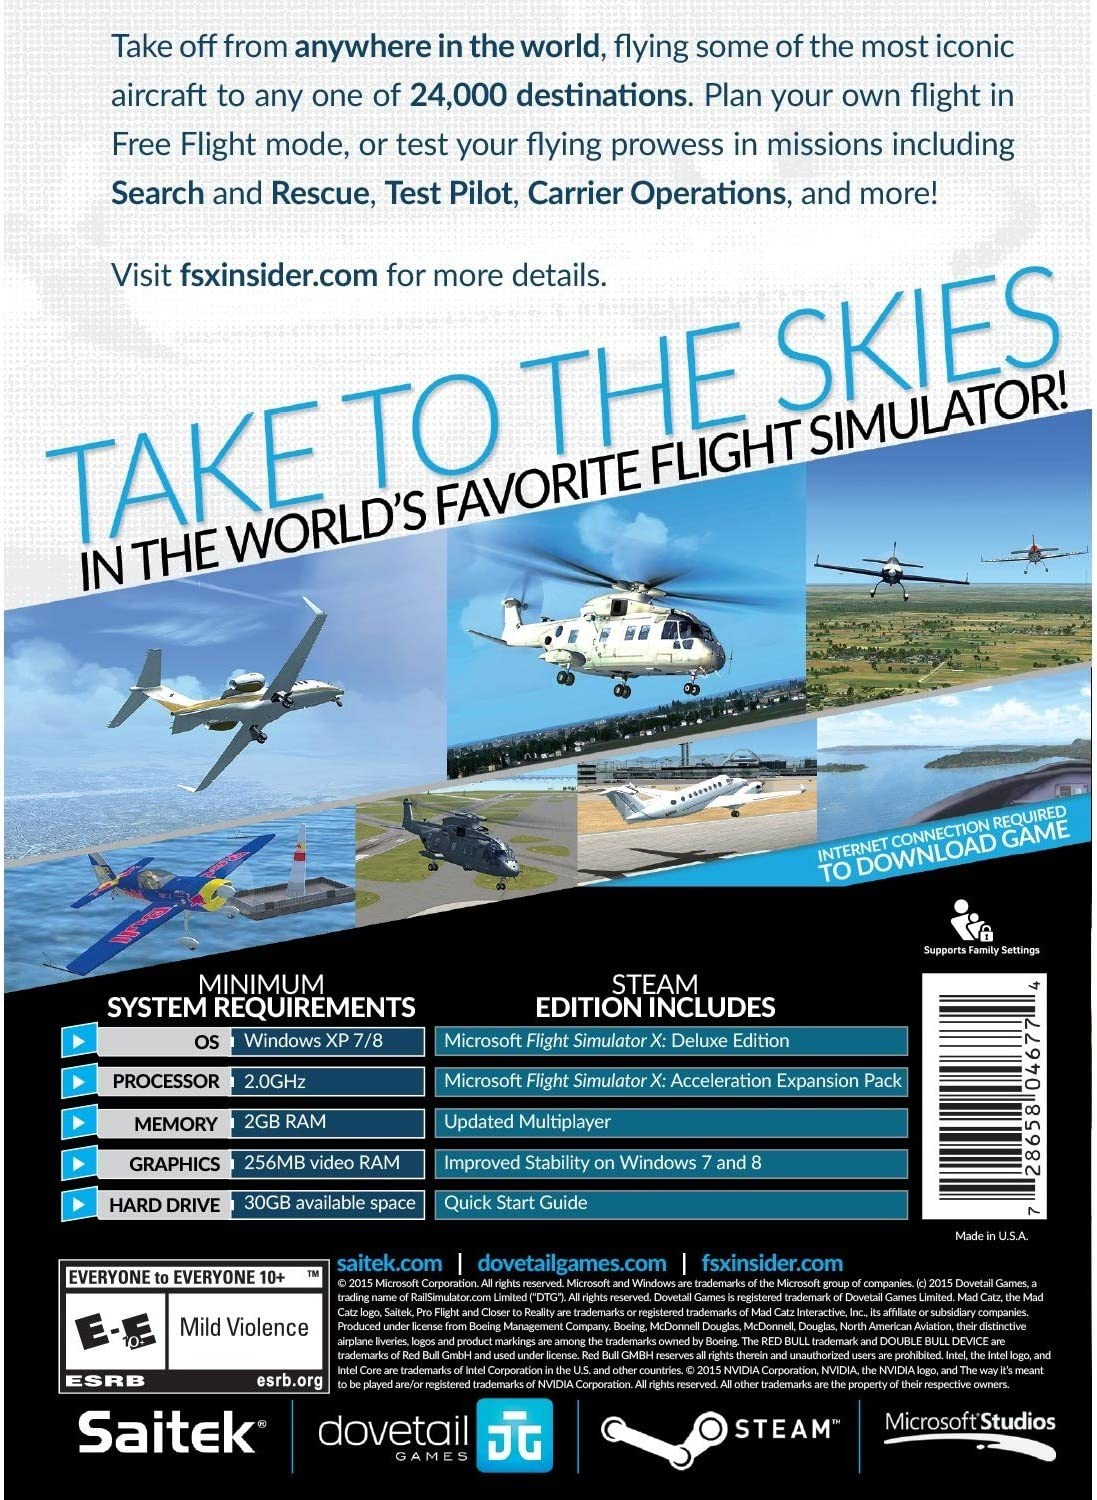 amazon com microsoft flight simulator x steam edition for pc rh amazon com Flight Simulator 2017 Flight Simulator X Steam Edition